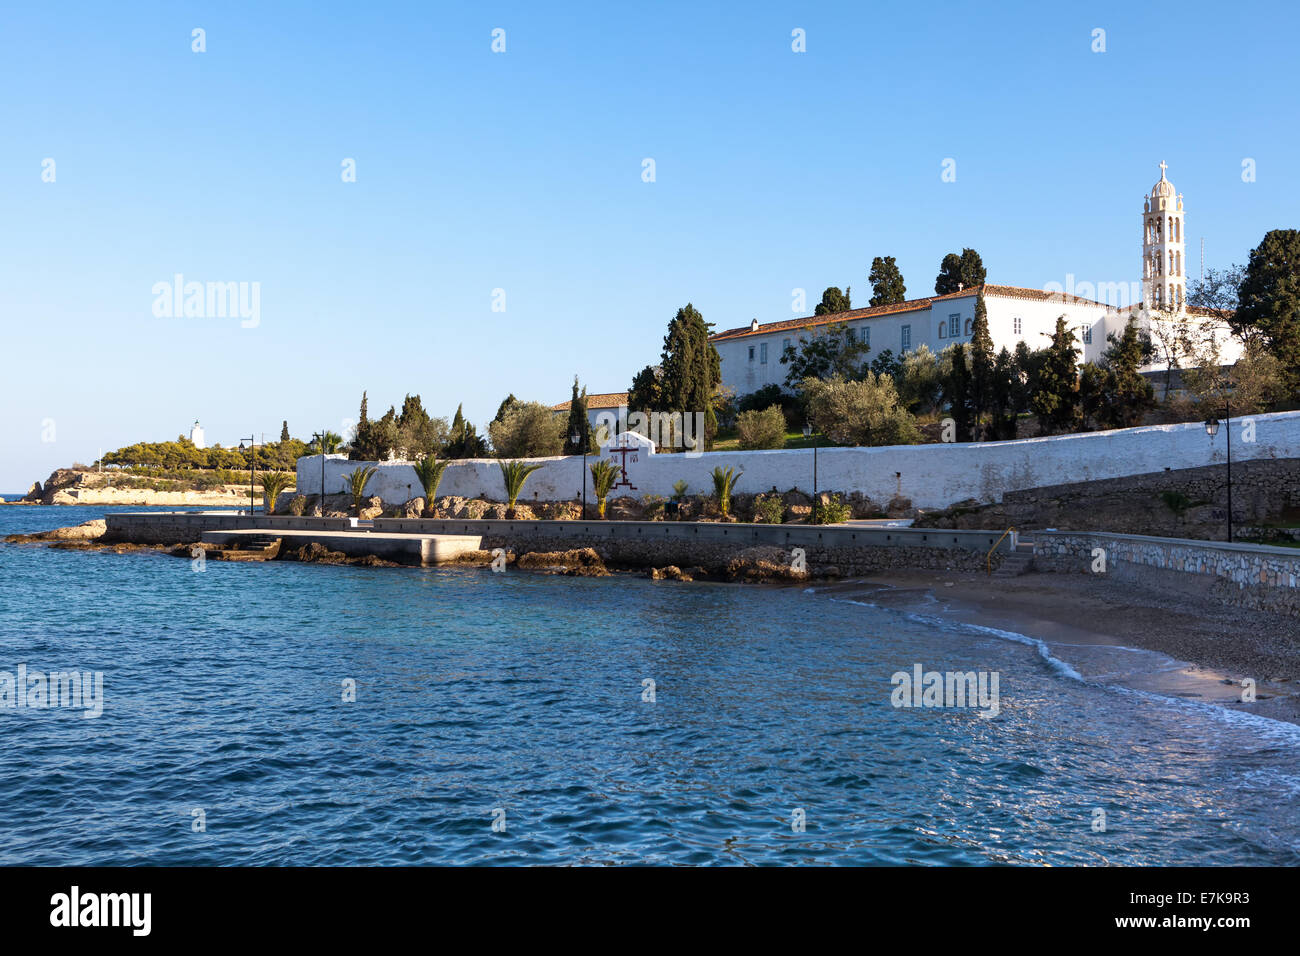 The former monastery of Agios Nikolaos on Spetses Island, Greece, which is now the island's cathedral. - Stock Image